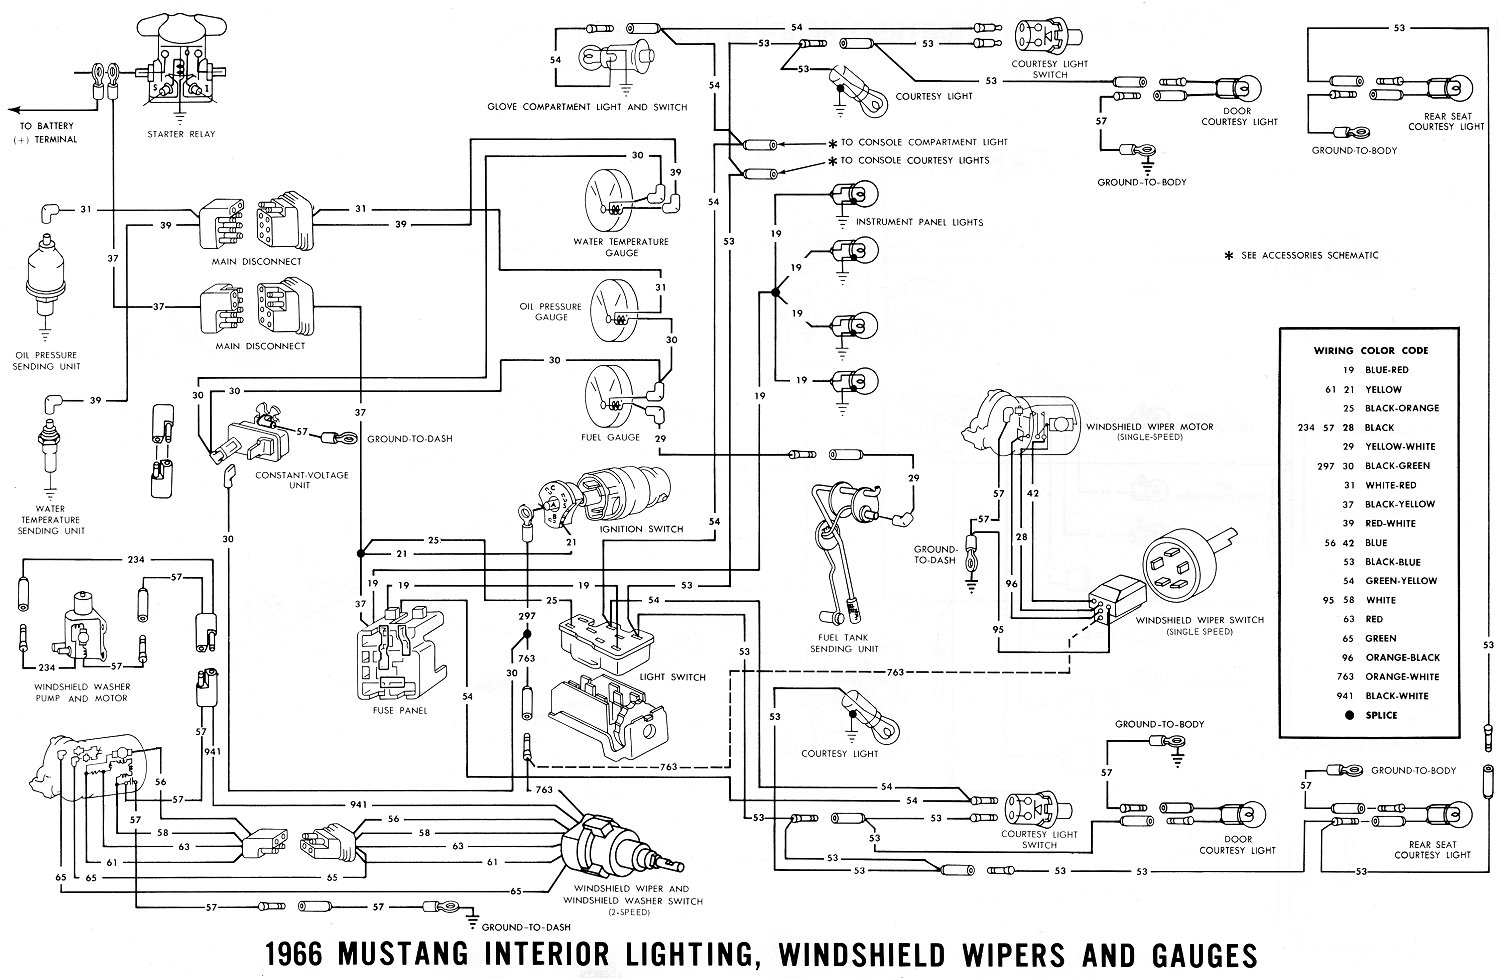 70 Mercury Cougar Wiring Diagram further F  22 also Fordindex together with 1965 Mustang Wiring Diagrams together with 71 Javelin Ignition Lockcylinder Stuck In On topic61332. on 70 thunderbird ignition diagram